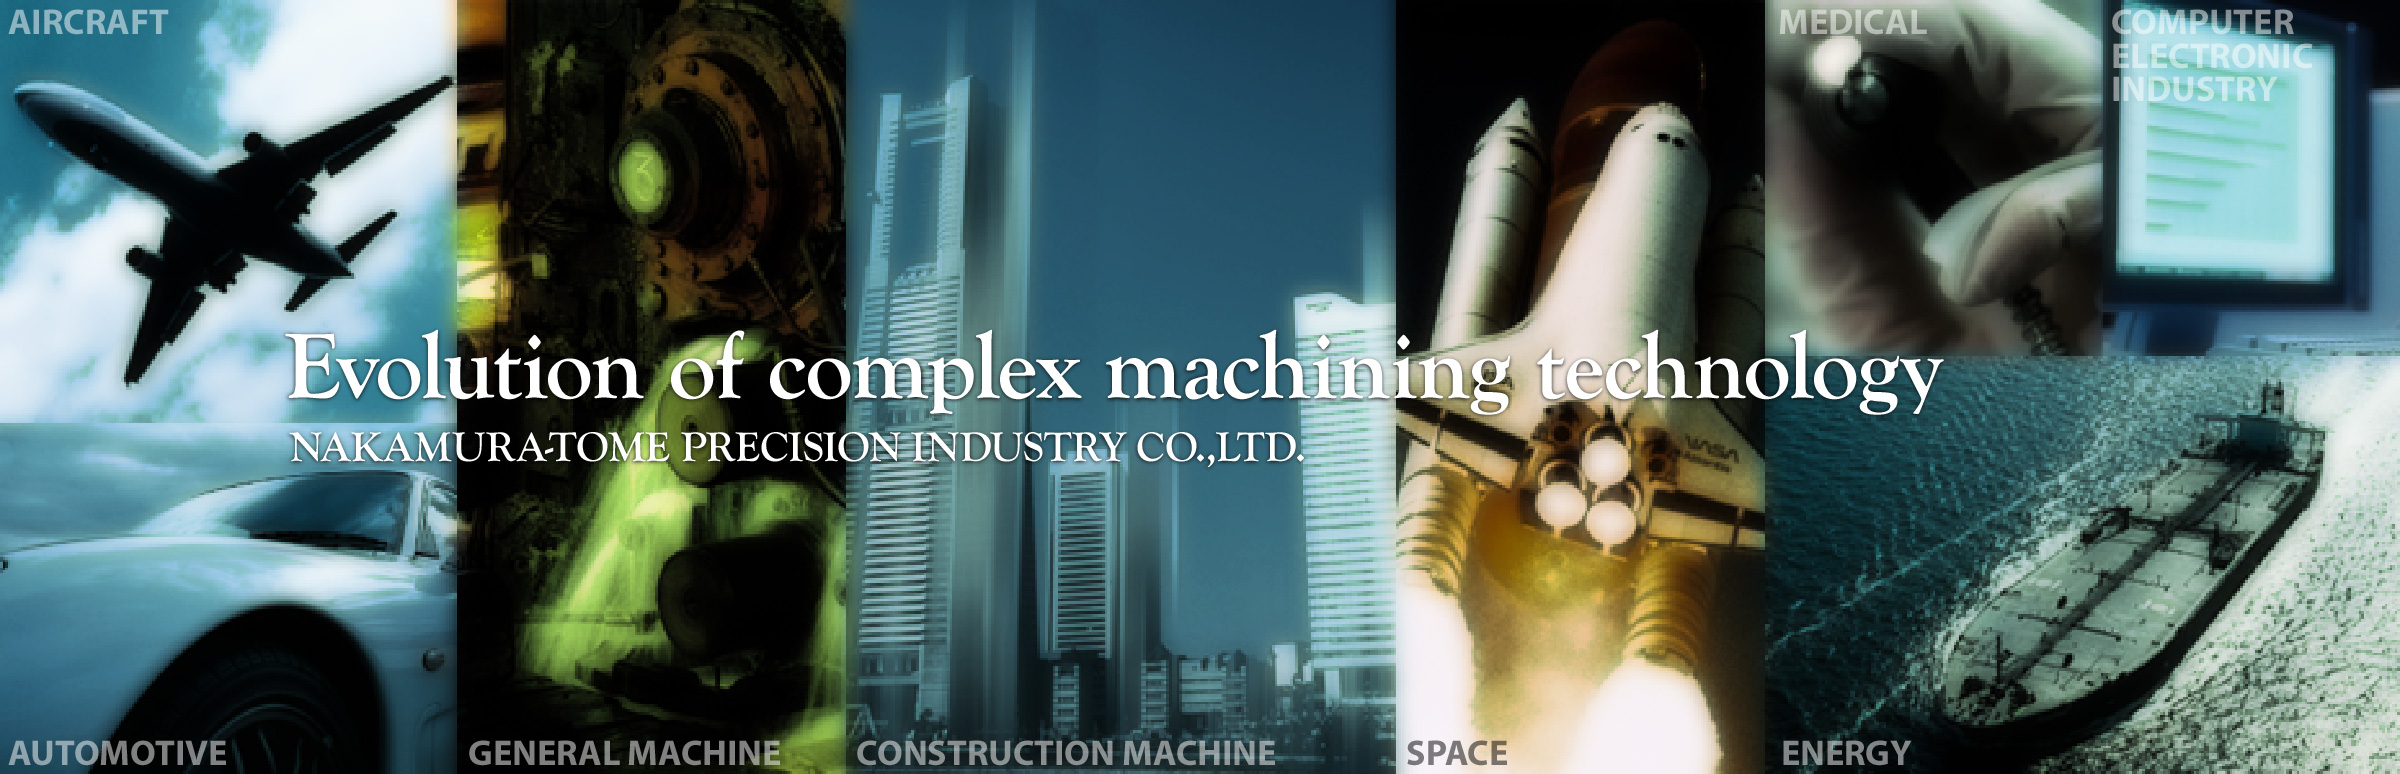 Evolution of complex machining technology